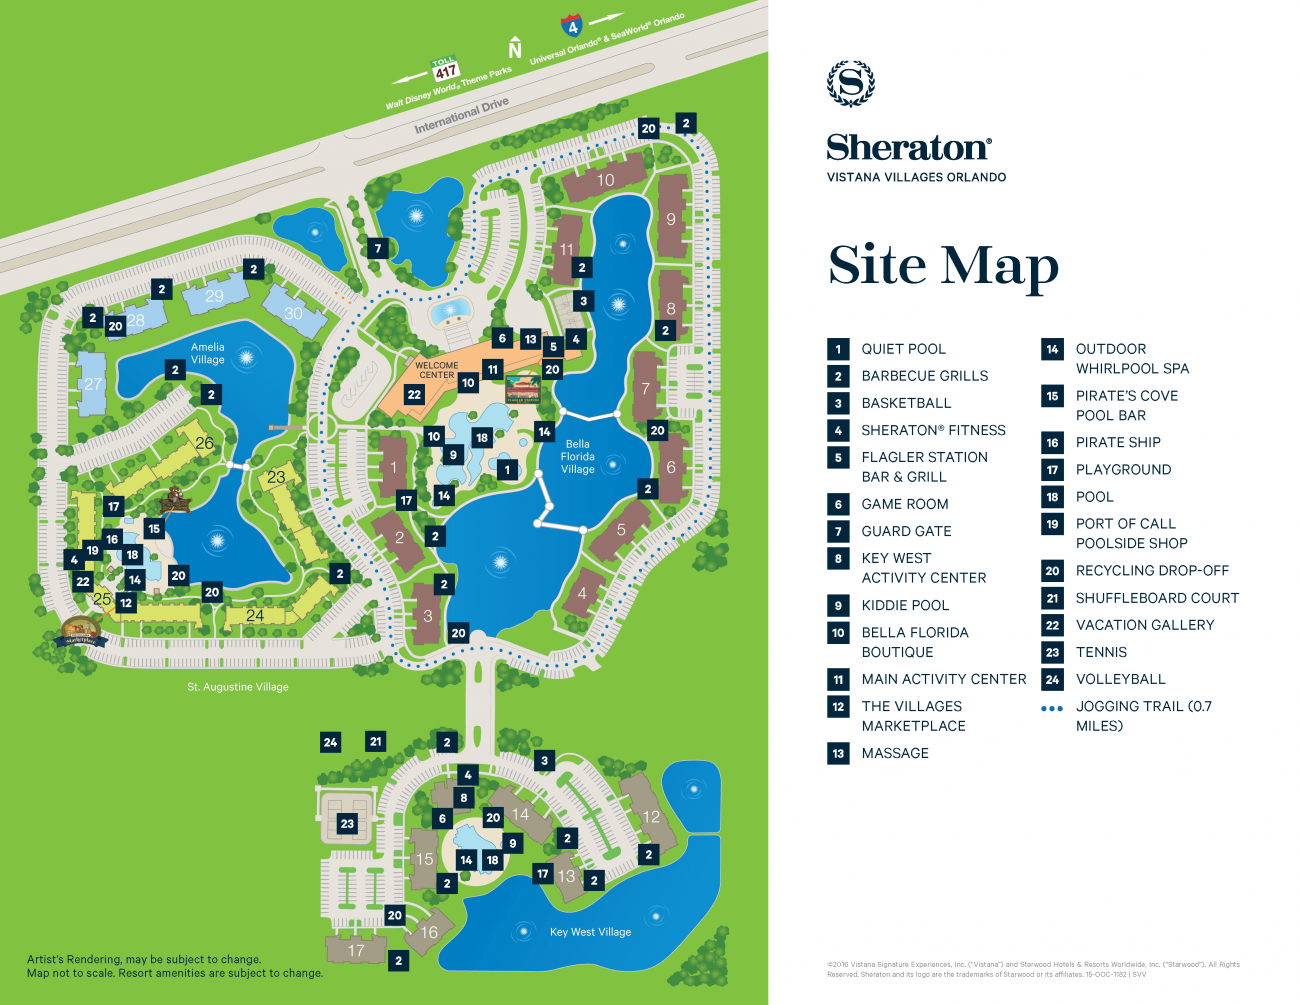 Sheraton Vistana Resort Map Sheraton Vistana Villages best building | The DIS Disney